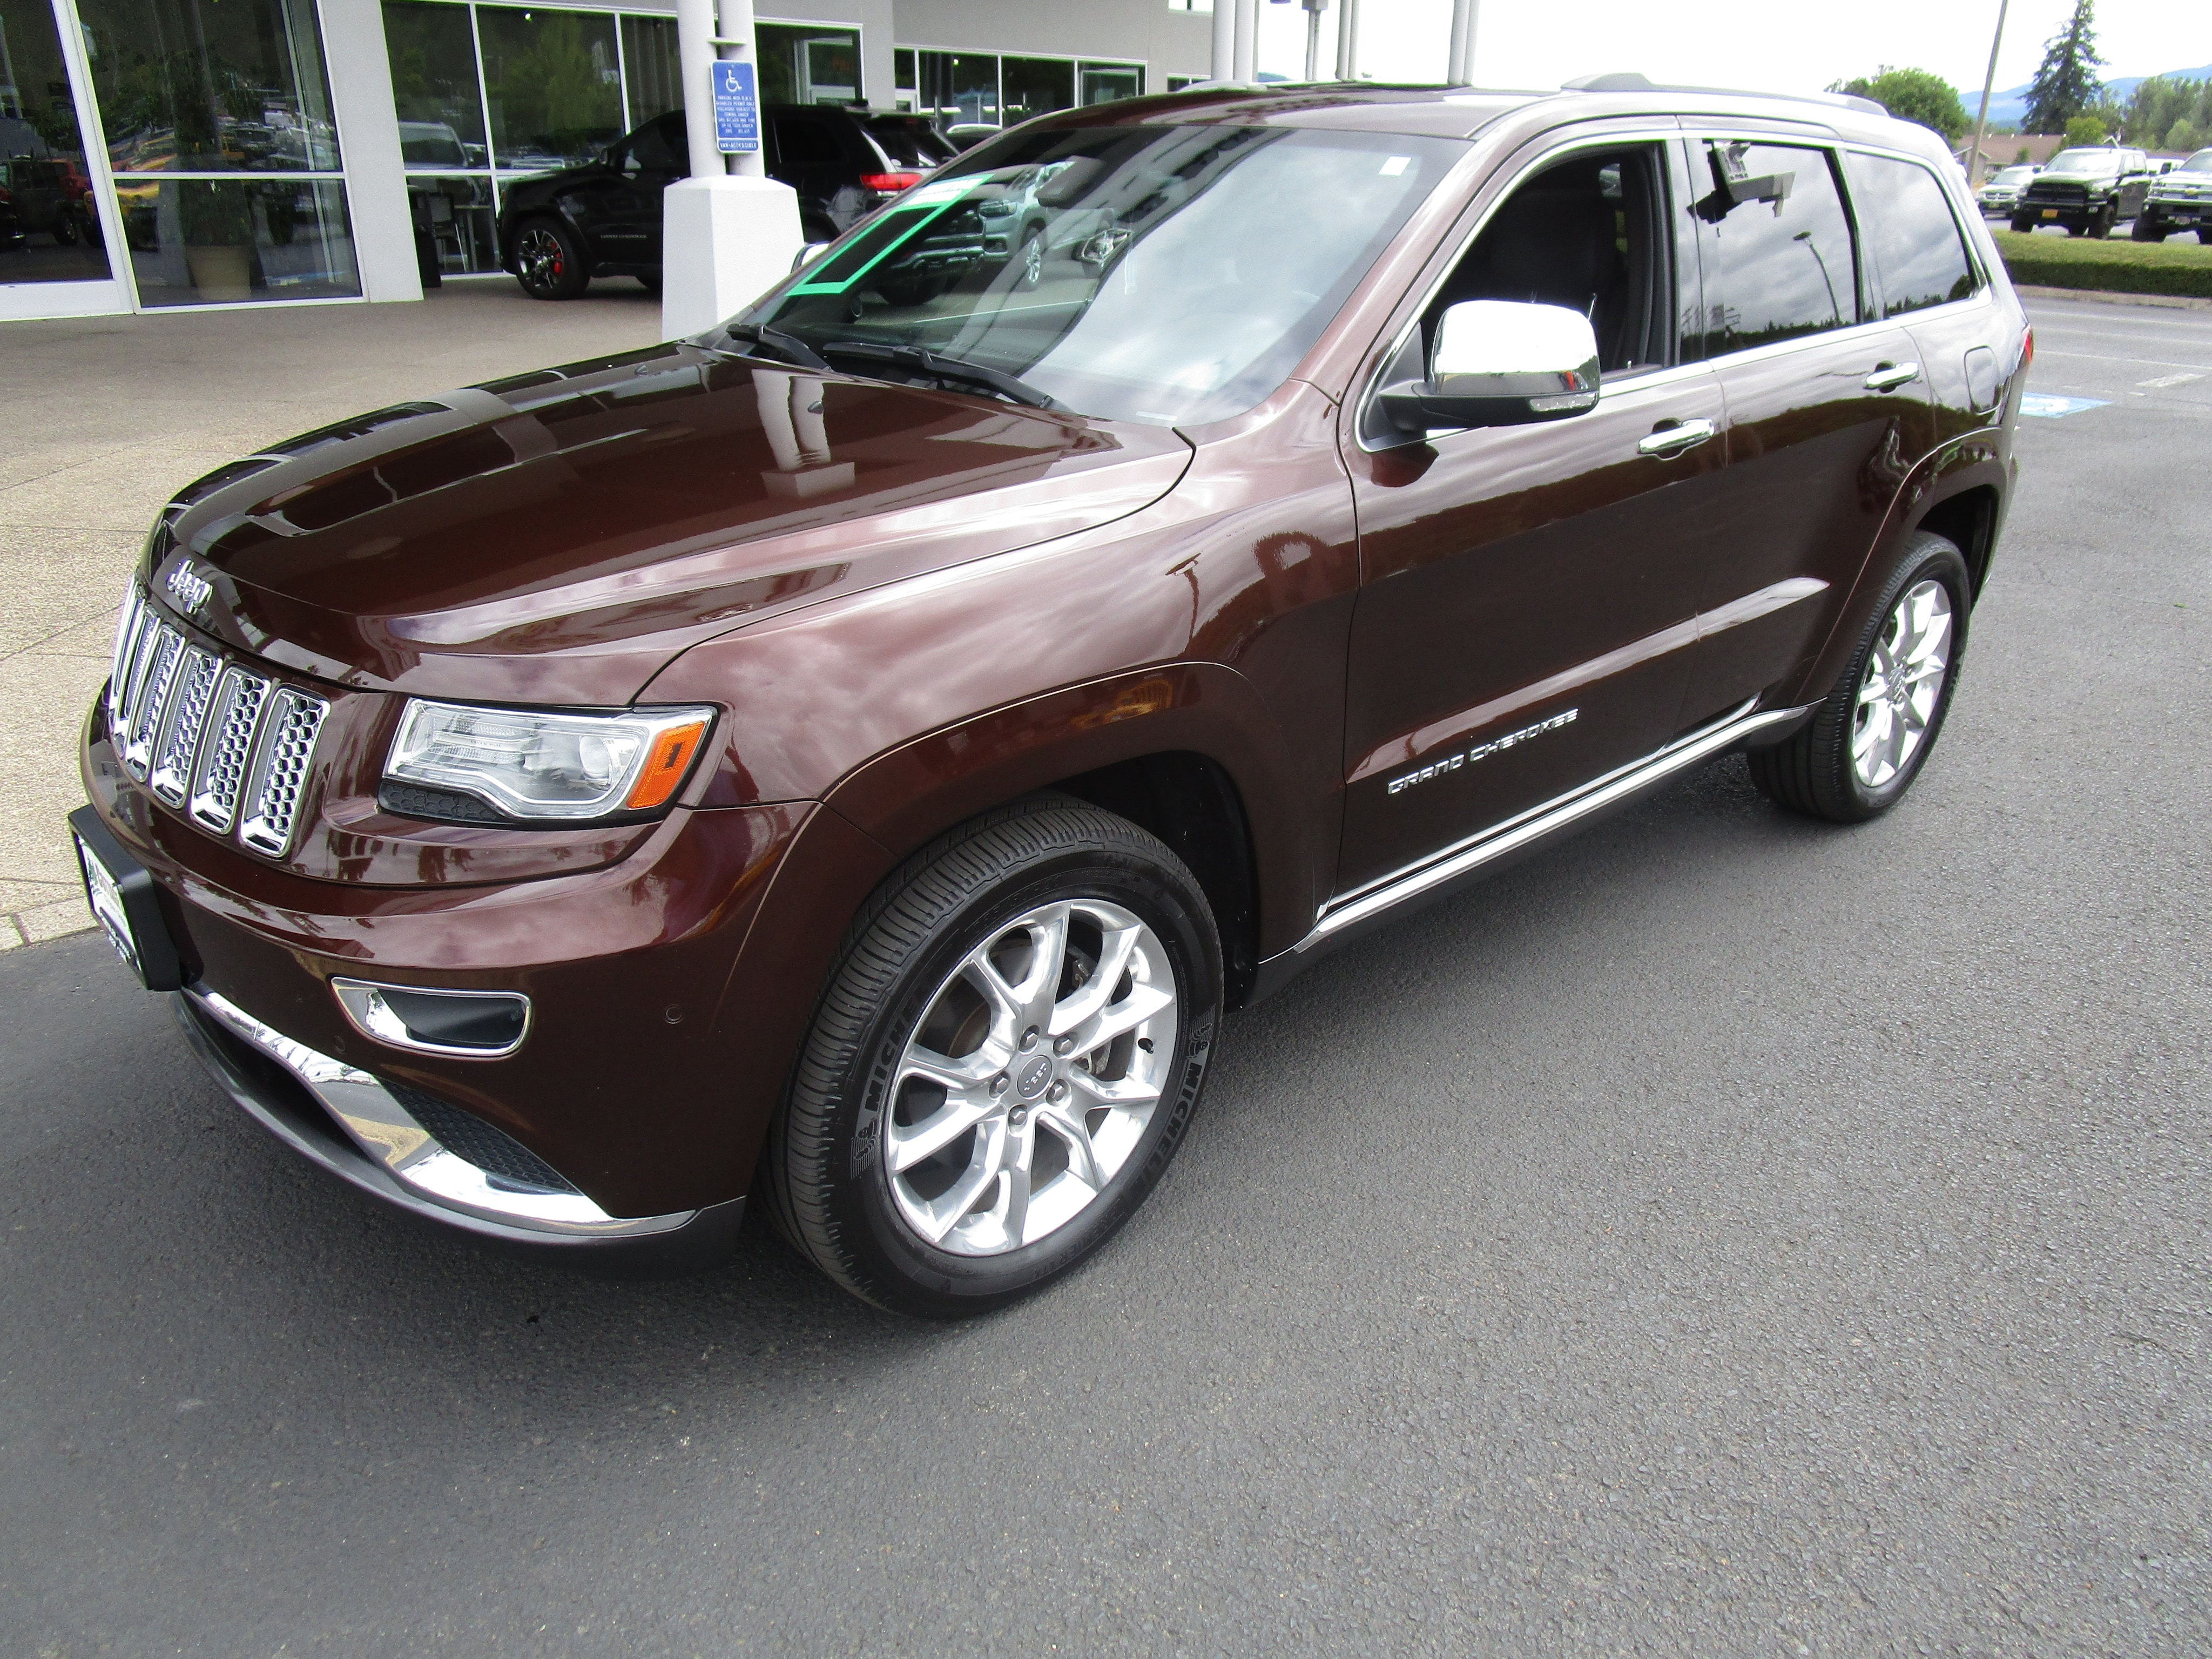 Used 2014 Jeep Grand Cherokee >> Used 2014 Jeep Grand Cherokee Summit 4x4 For Sale In Cottage Grove Or Near Springfield Or Vin 1c4rjfjmxec384948